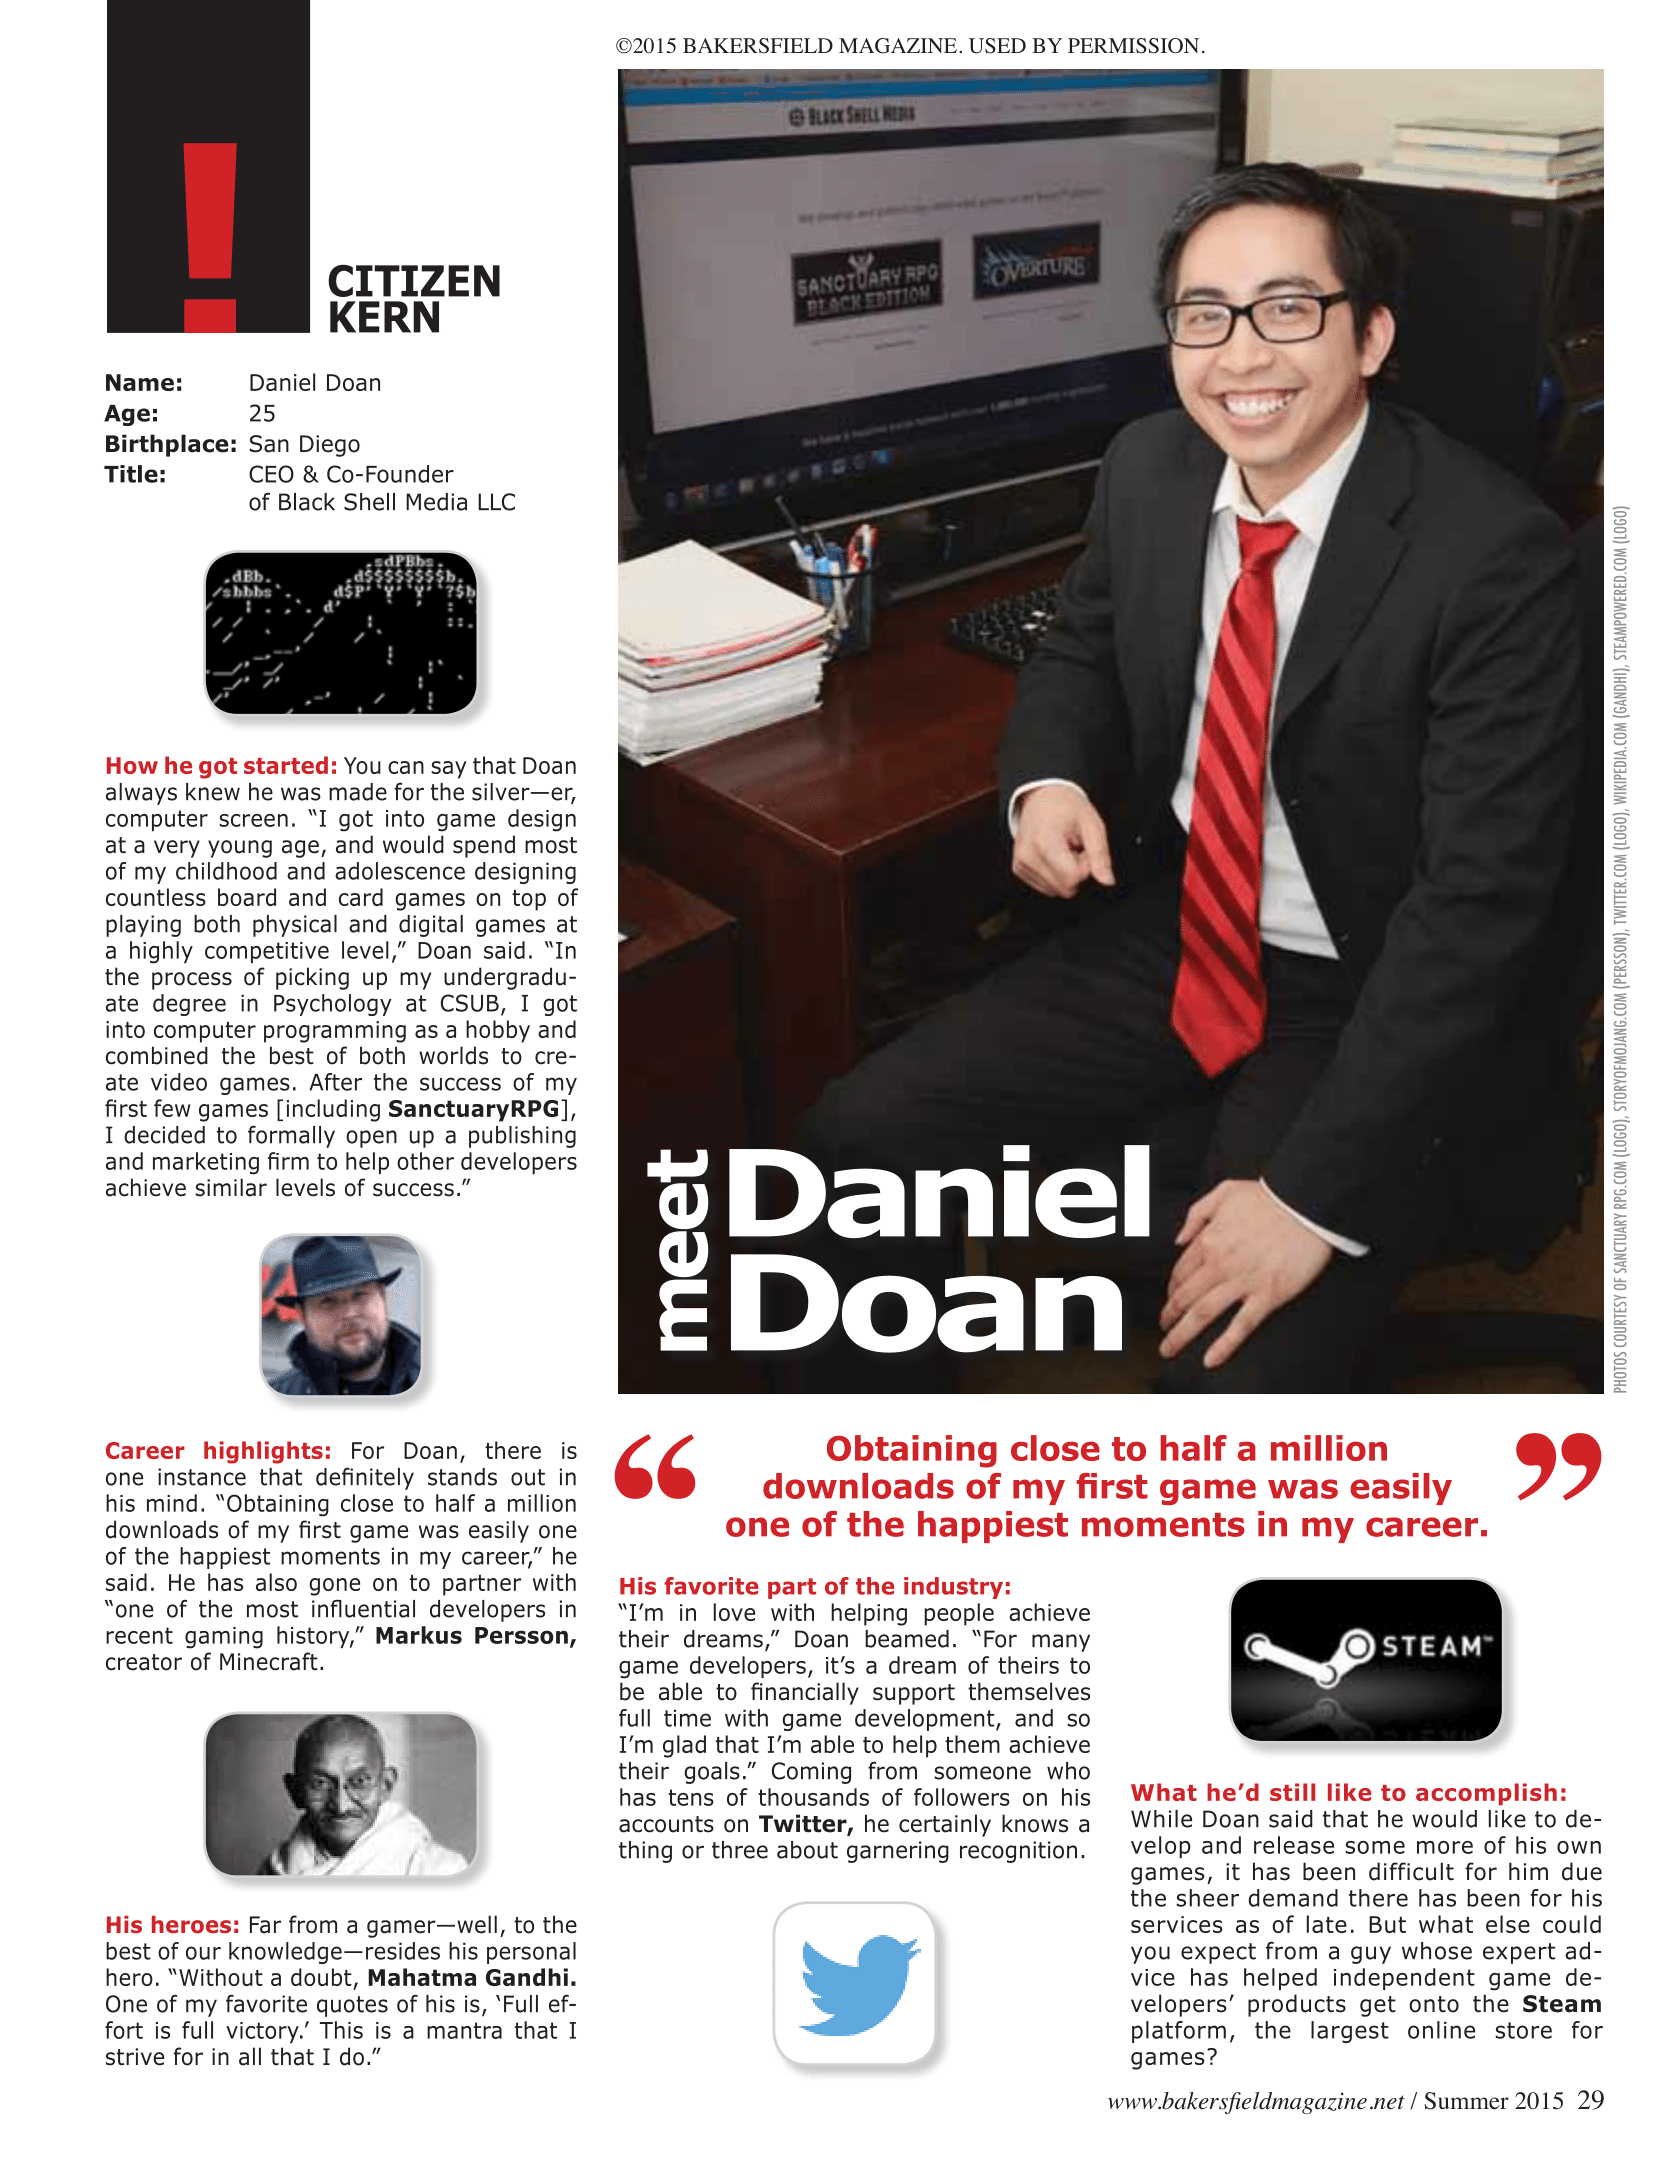 FEATURED IN A LOCAL MAGAZINE foLlowing the success of black shell media.